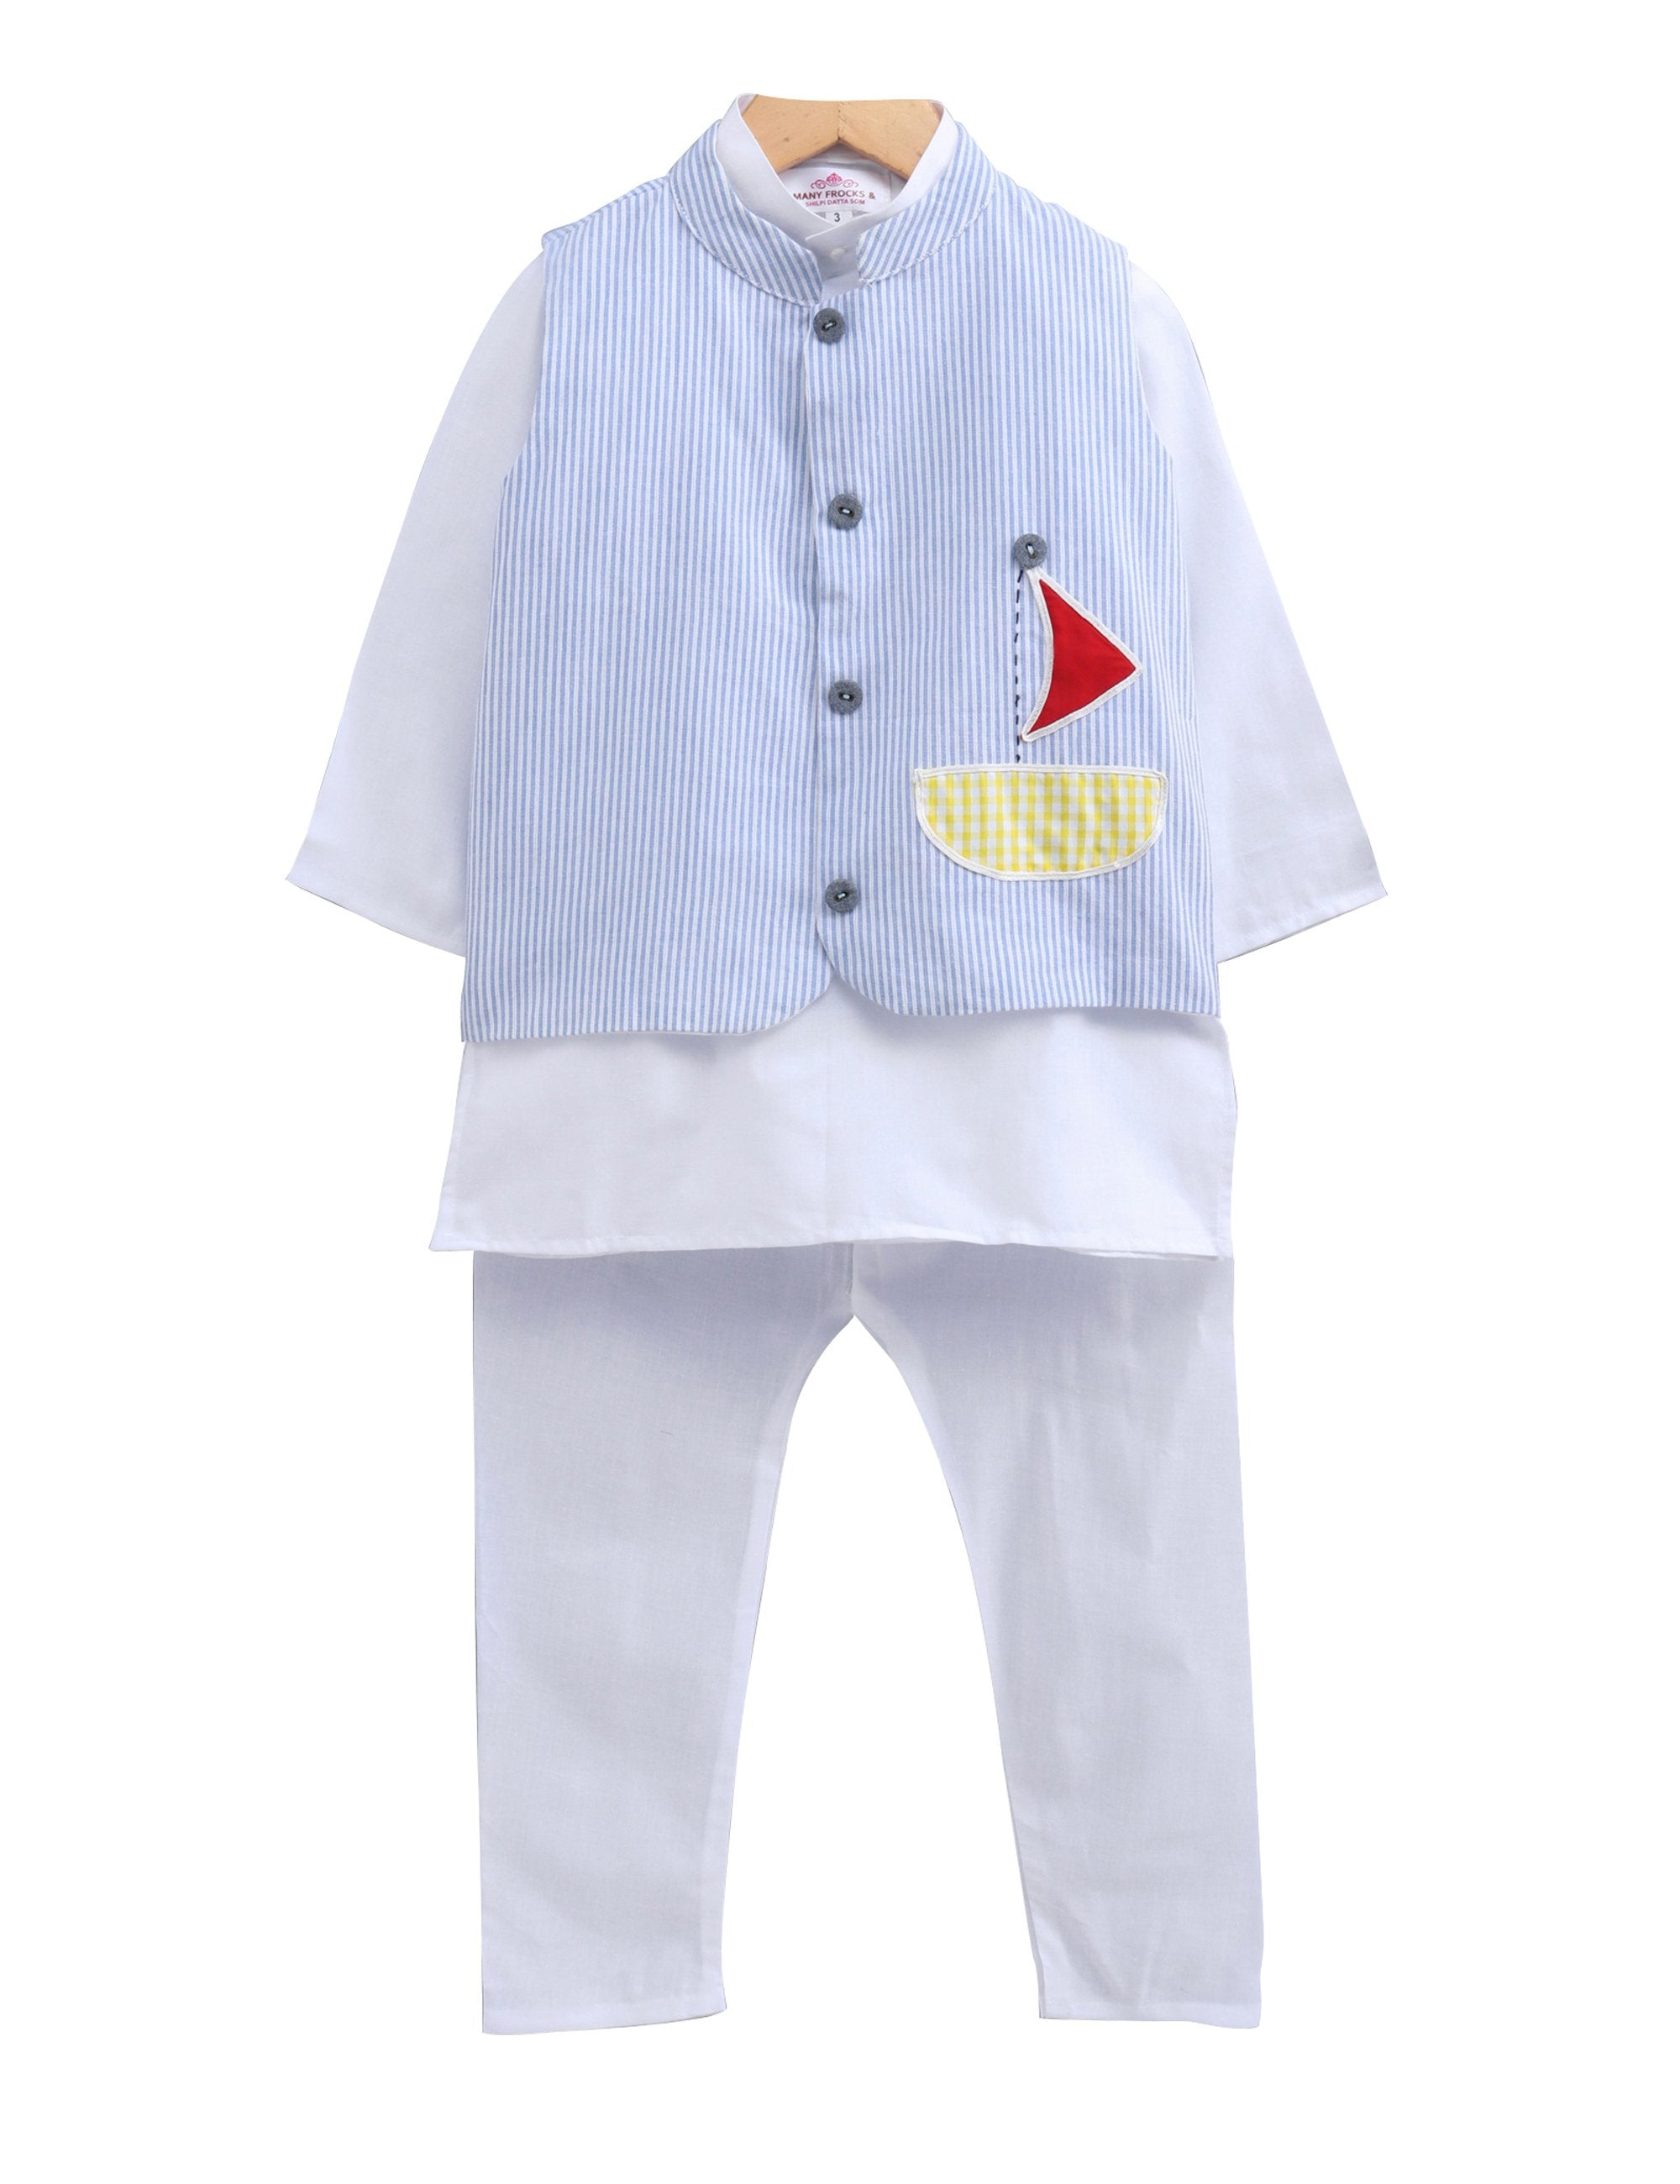 Boys Kurta Pyjama with Sailor Boat Jacket